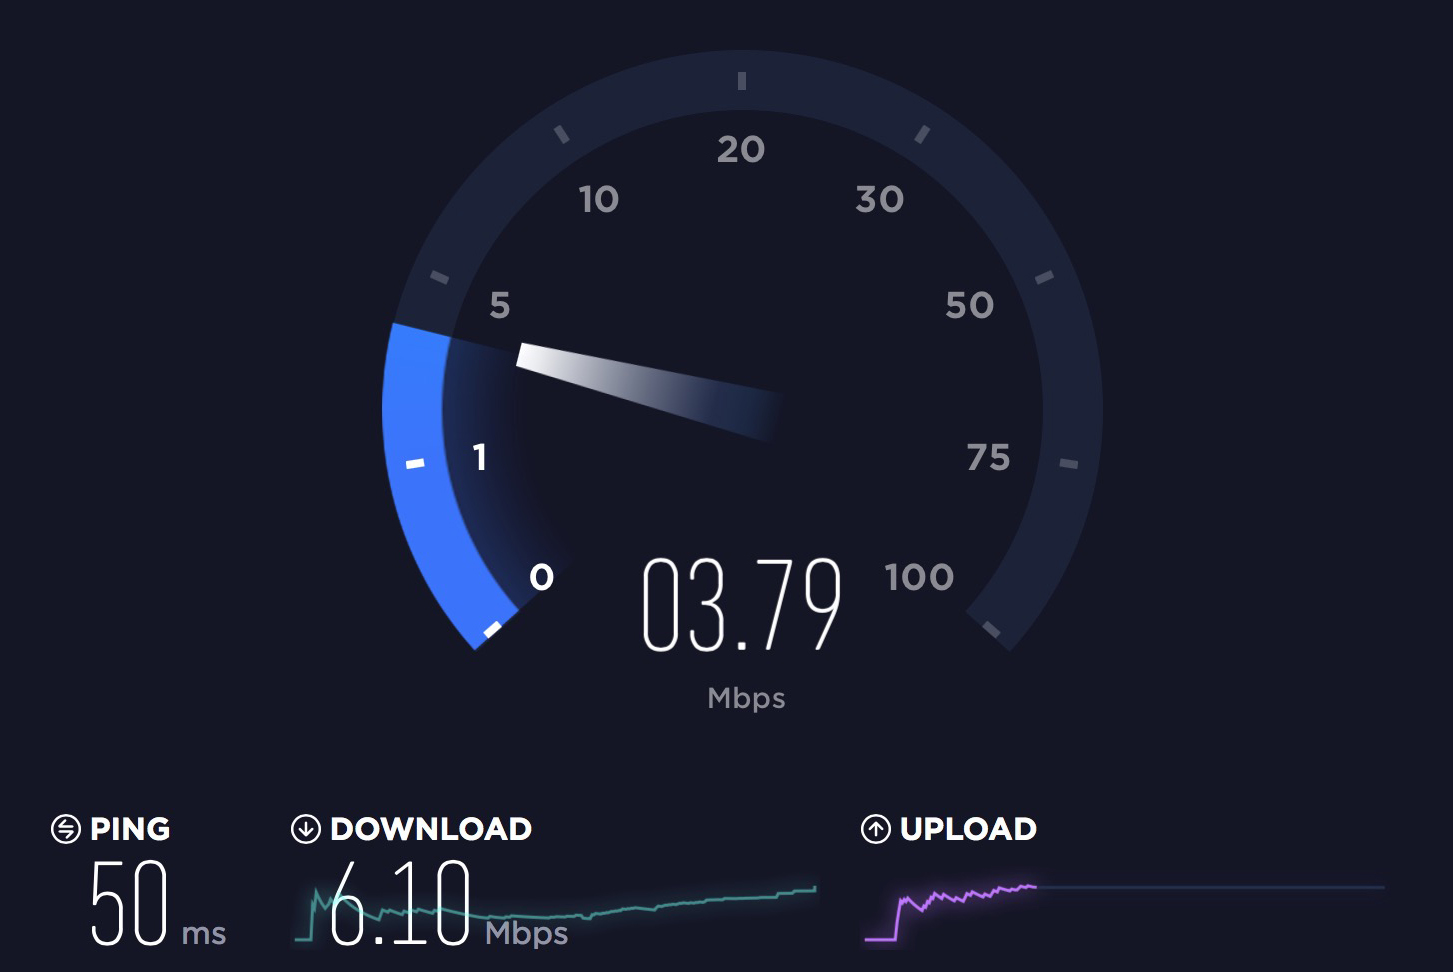 Ping speed test